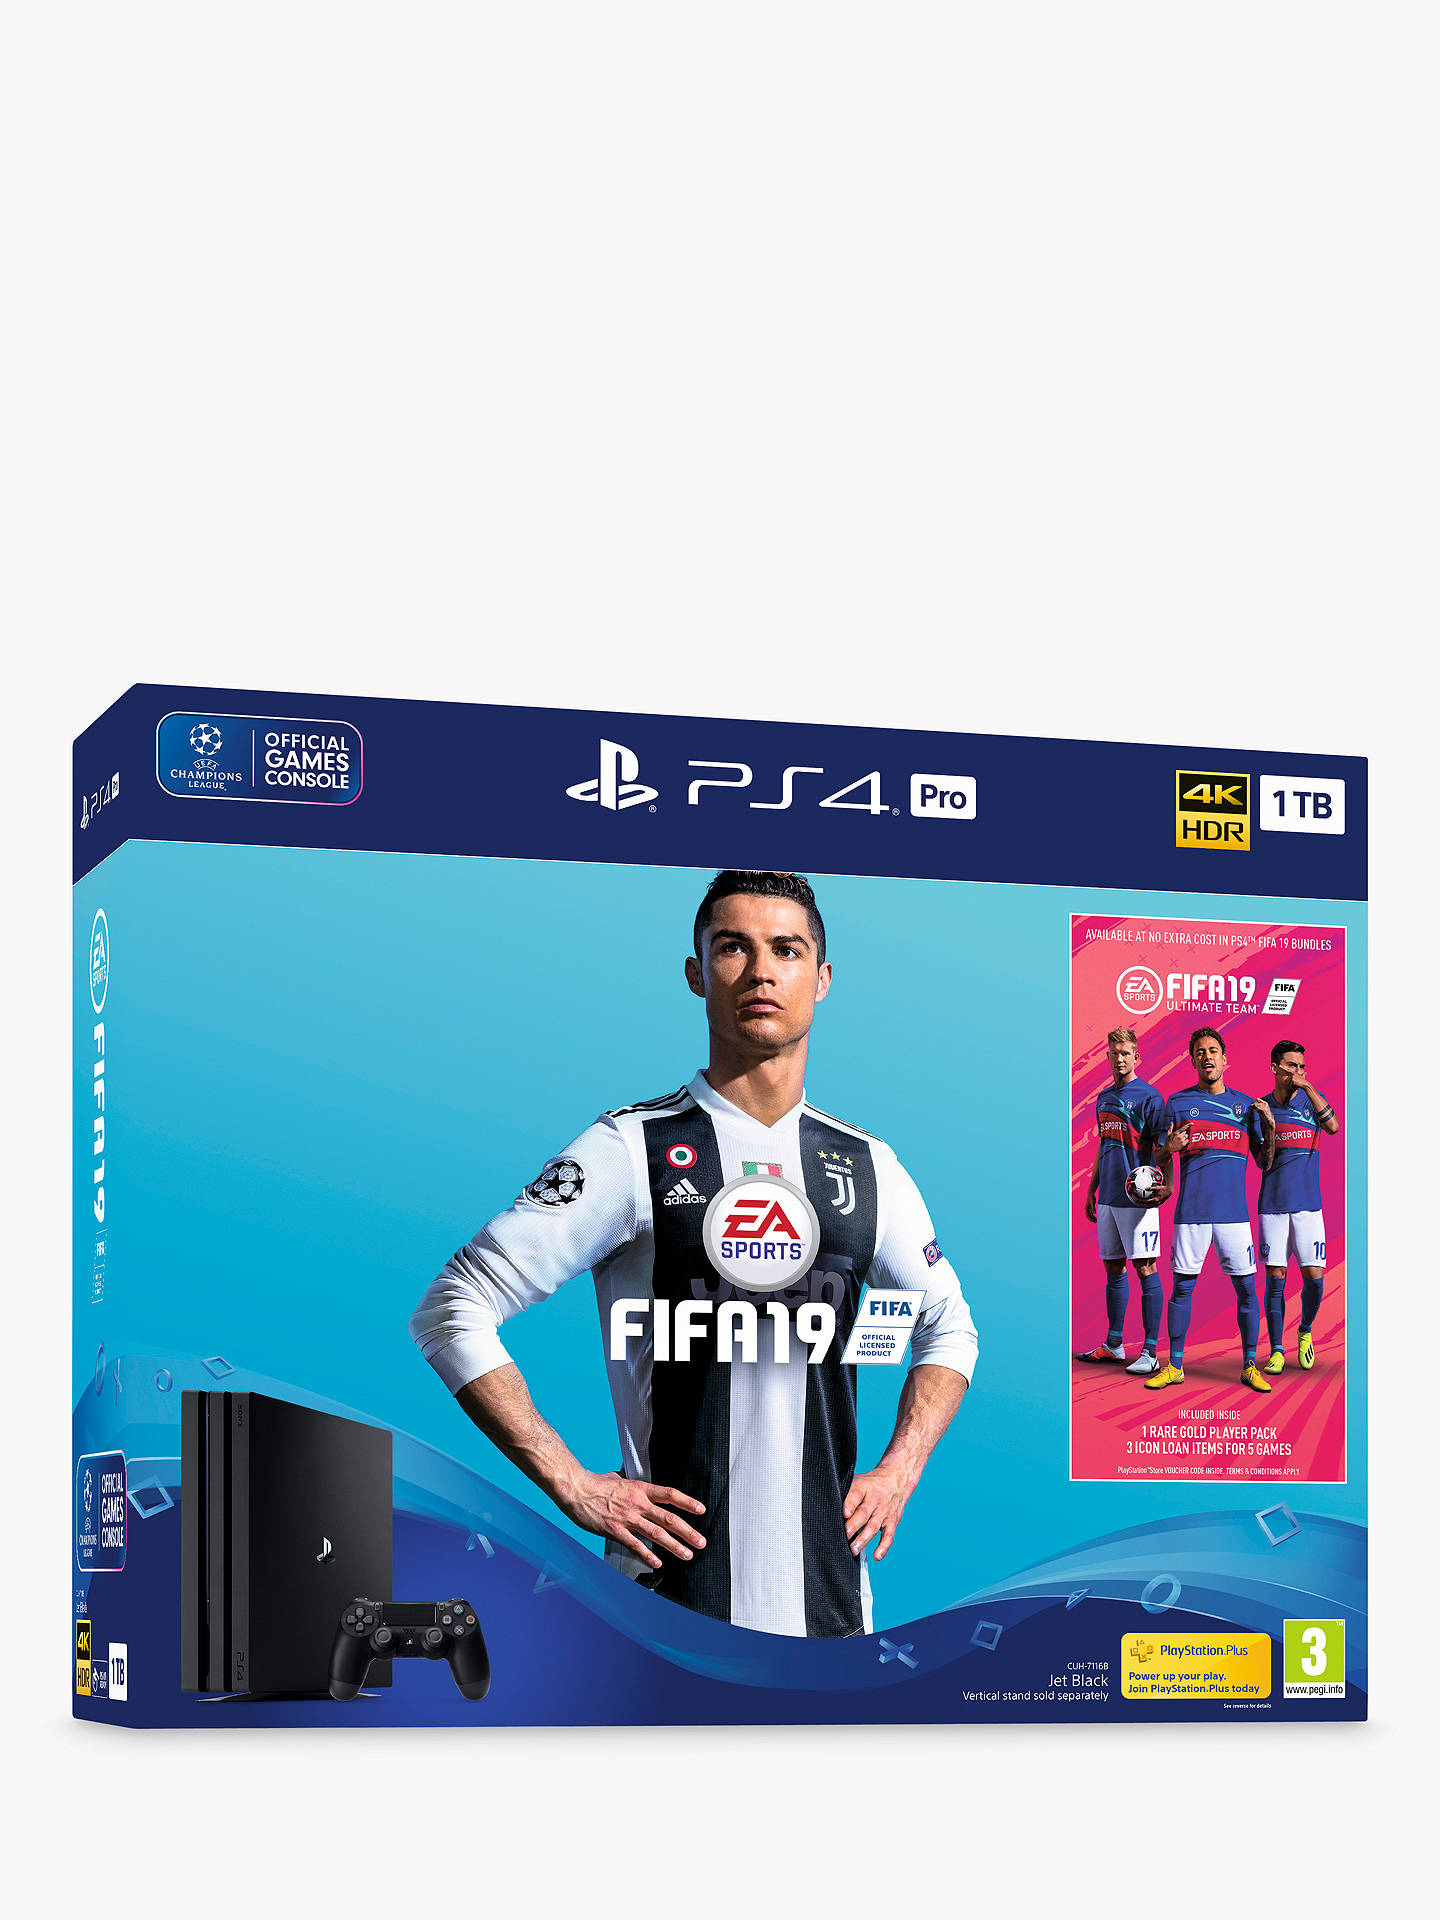 BuySony PlayStation 4 Pro Console, 1TB, with DualShock 4 Controller, Jet Black and FIFA 19 Bundle Online at johnlewis.com